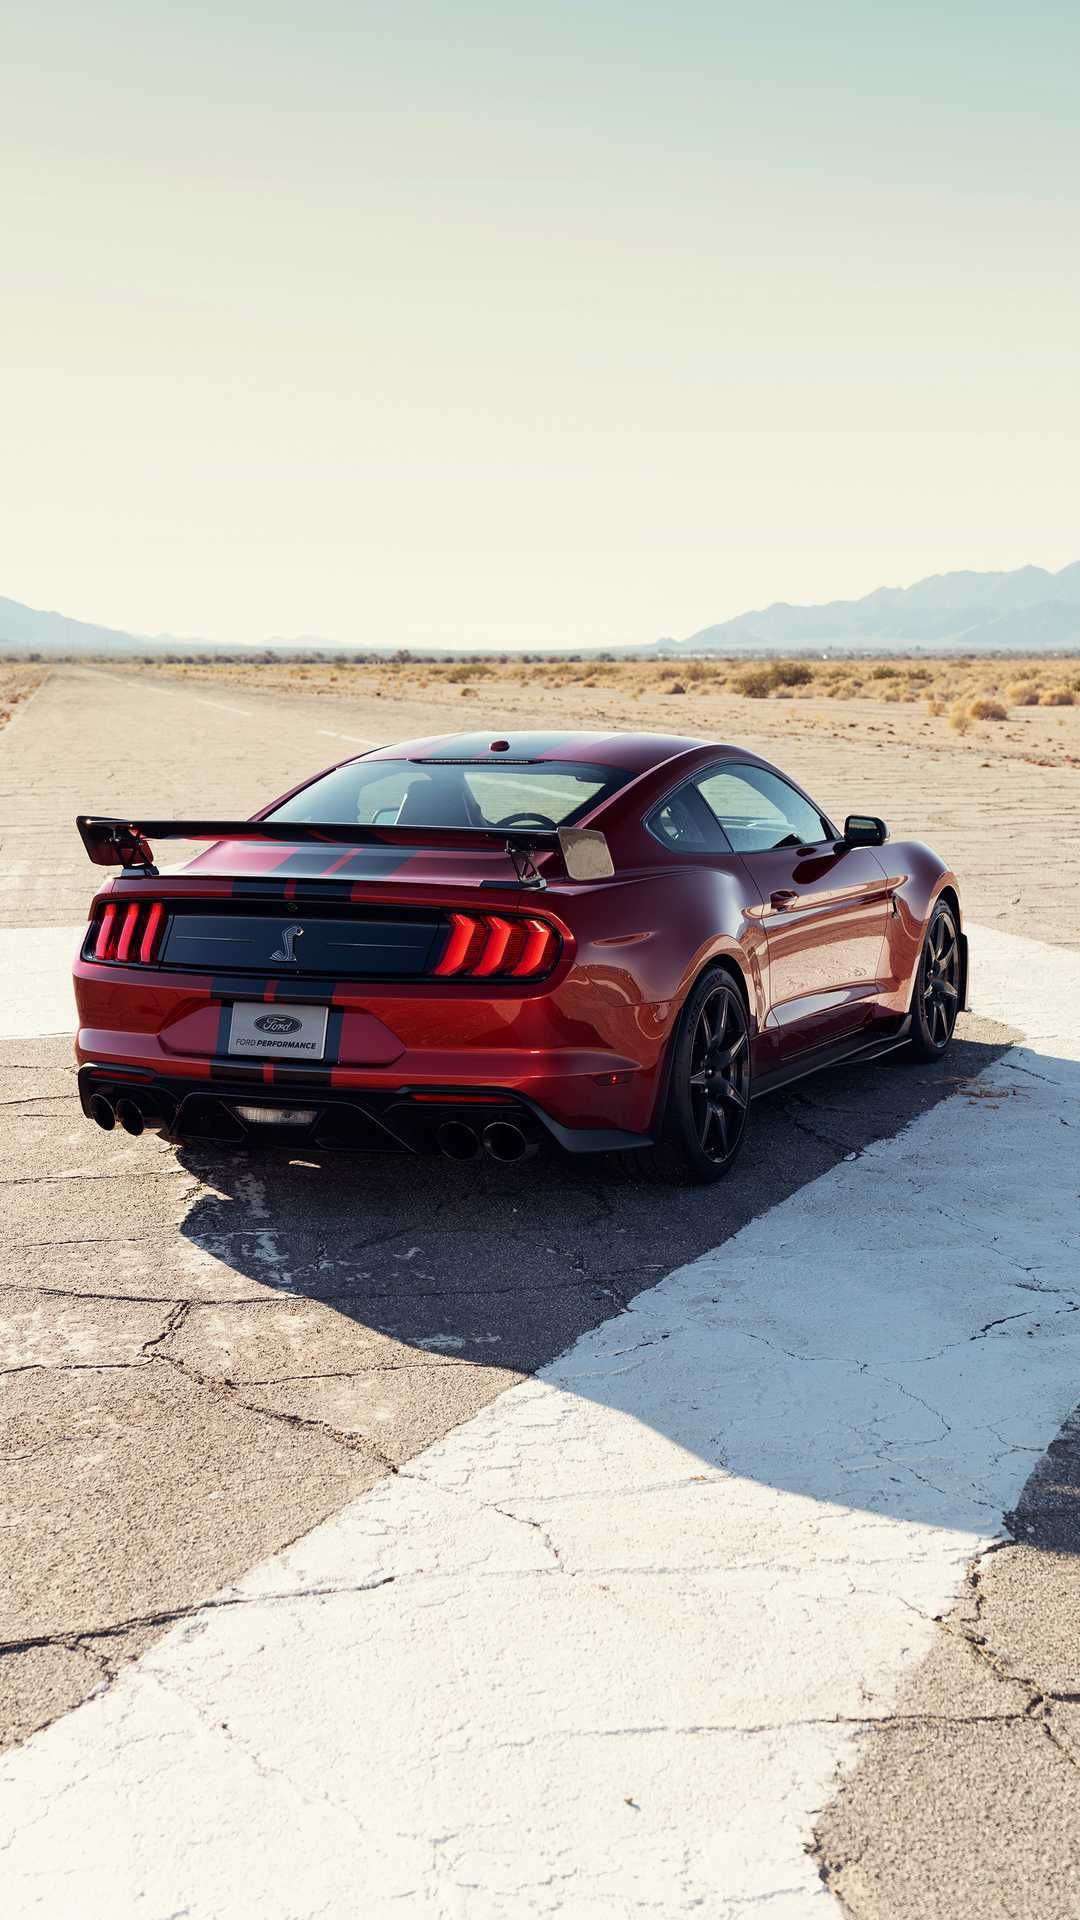 New, 2020 Ford Mustang Shelby GT500, red rear Ford